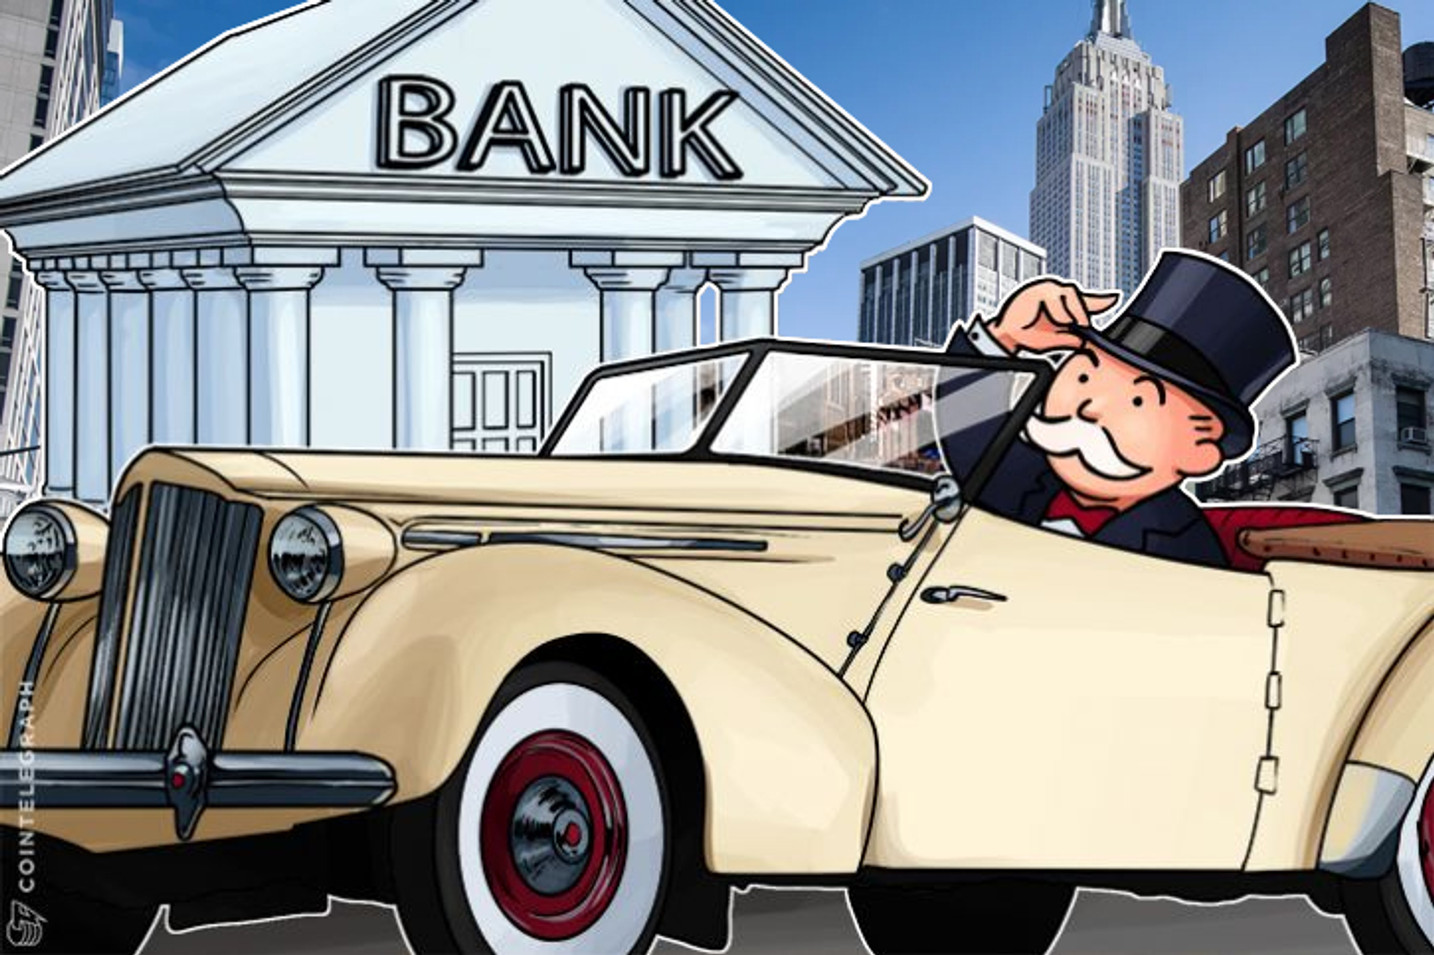 US Wants Bitcoin Operators to Apply for Bank Status